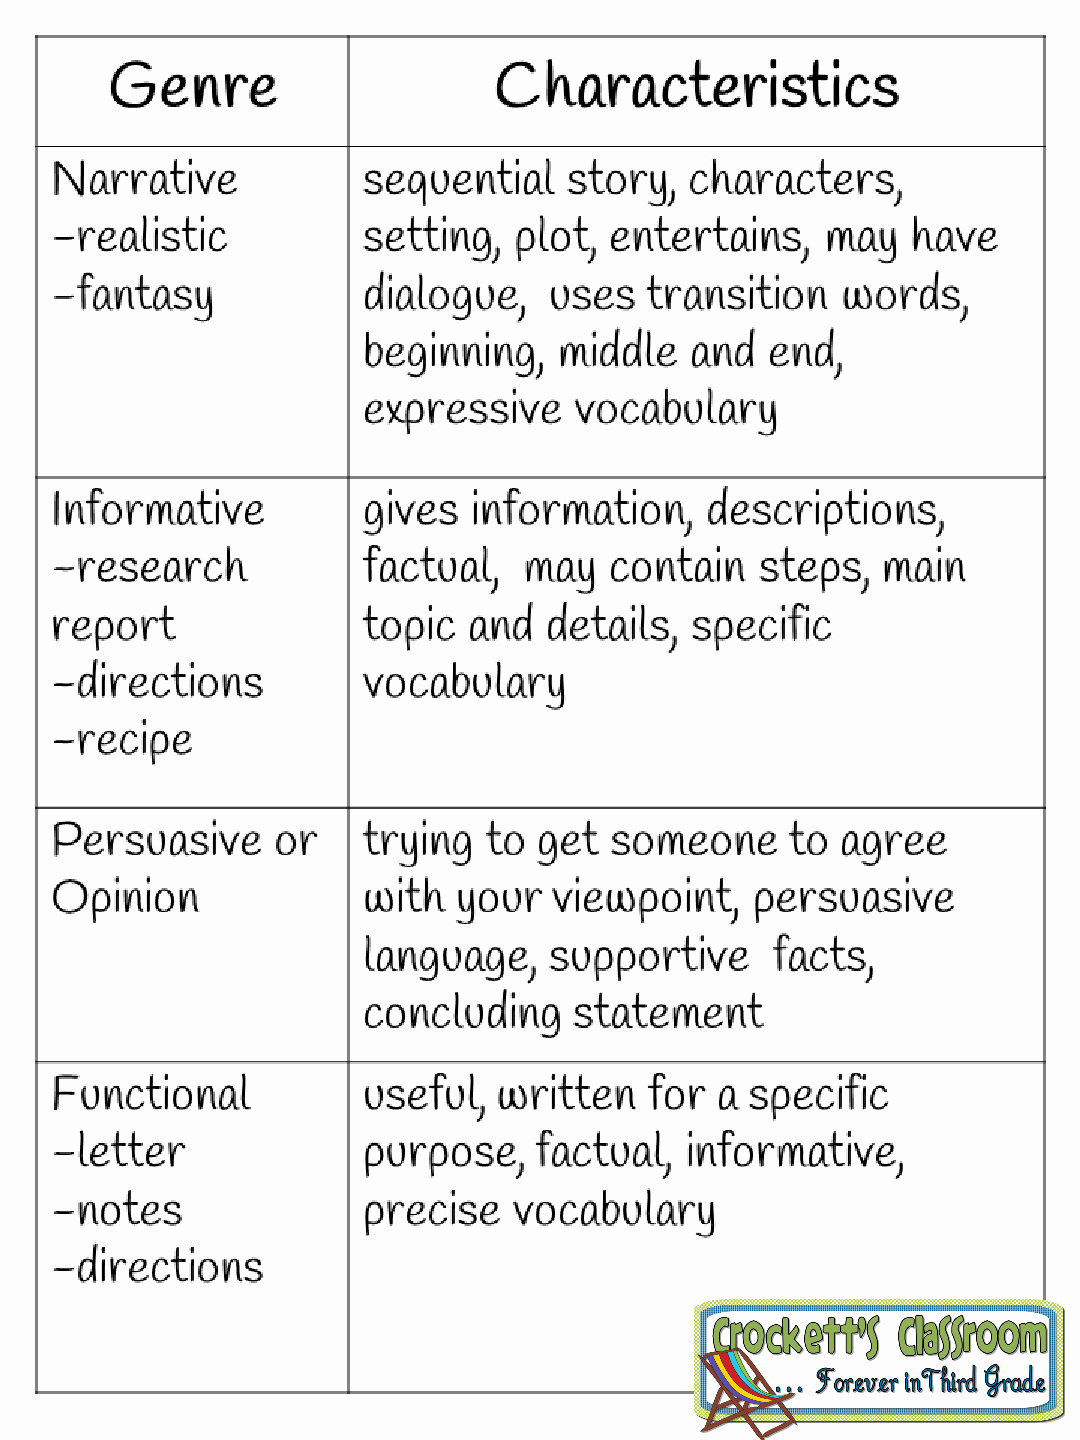 Genre Worksheets 4th Grade Beautiful Writing Genre Chart Handy for Students to Keep In their